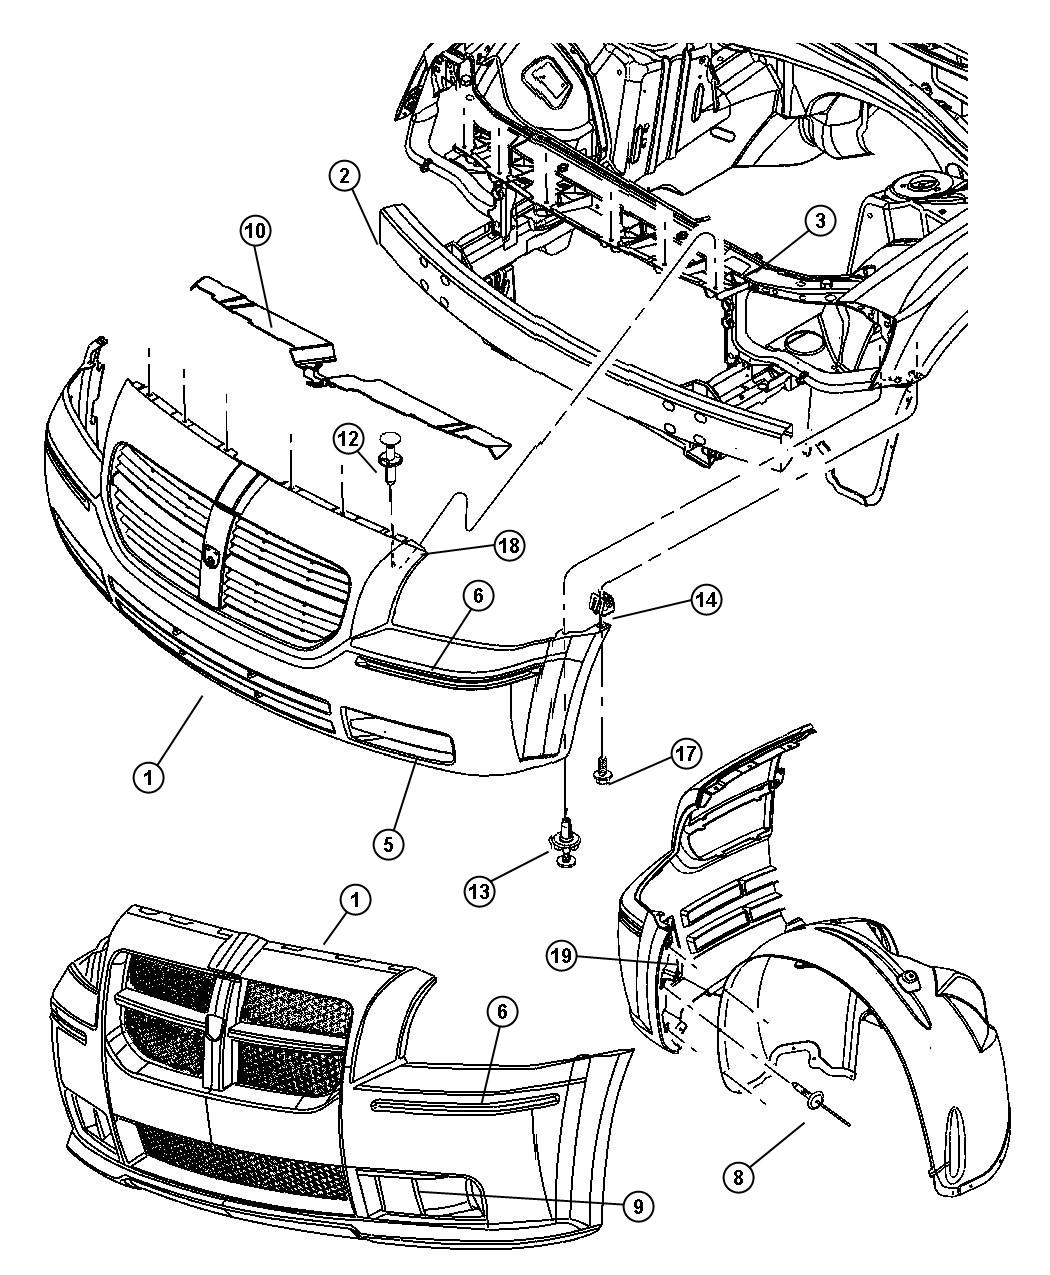 Dodge caliber front bumper diagram on engine wiring harness 1996 mercedes c220